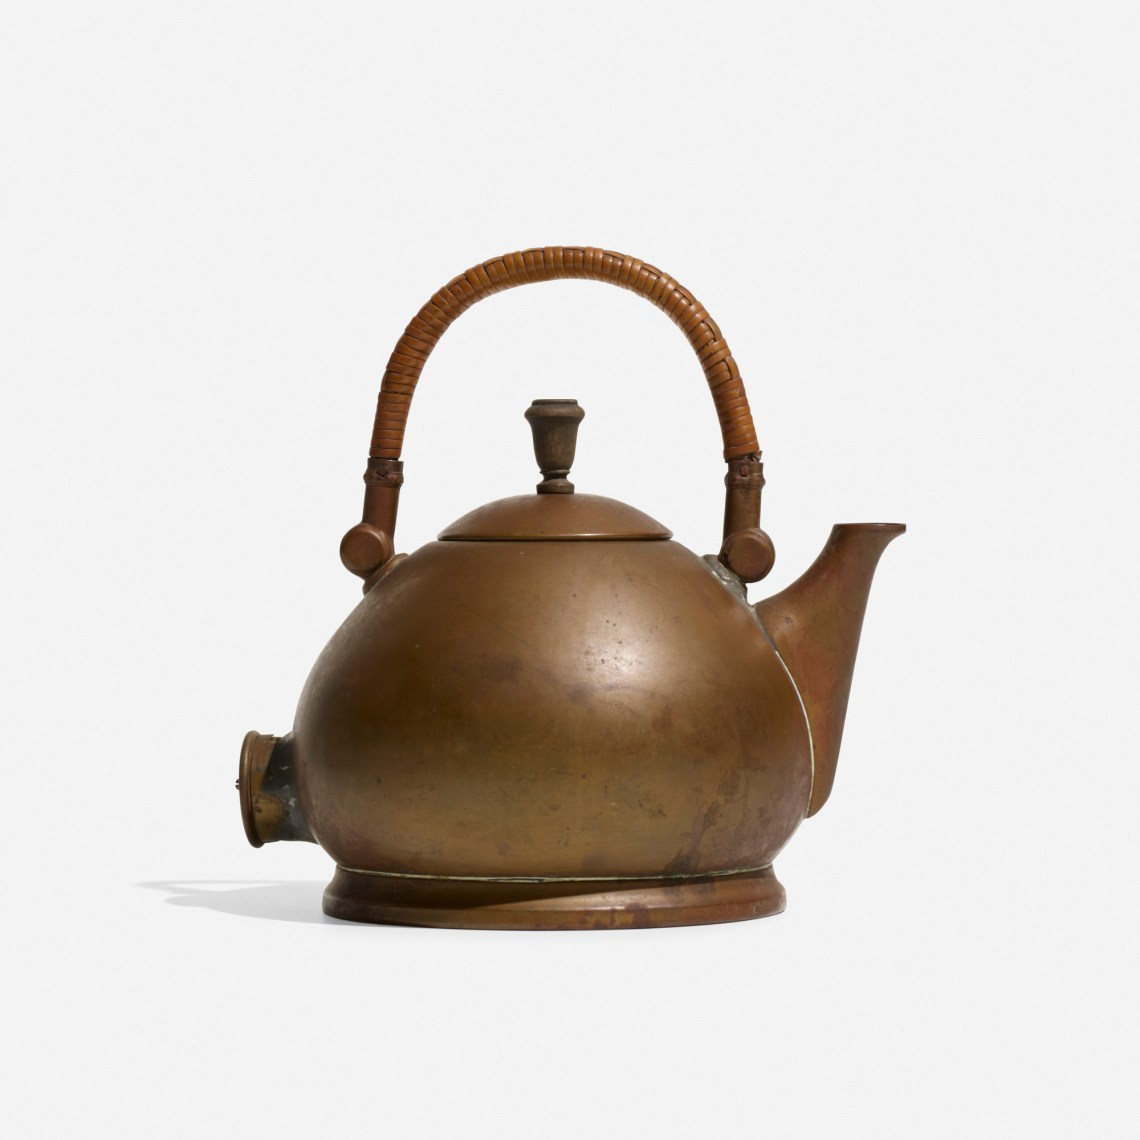 142_1_the_boyd_collection_iii_life_of_design_november_2018_peter_behrens_electric_tea_kettle__wright_auction.jpg